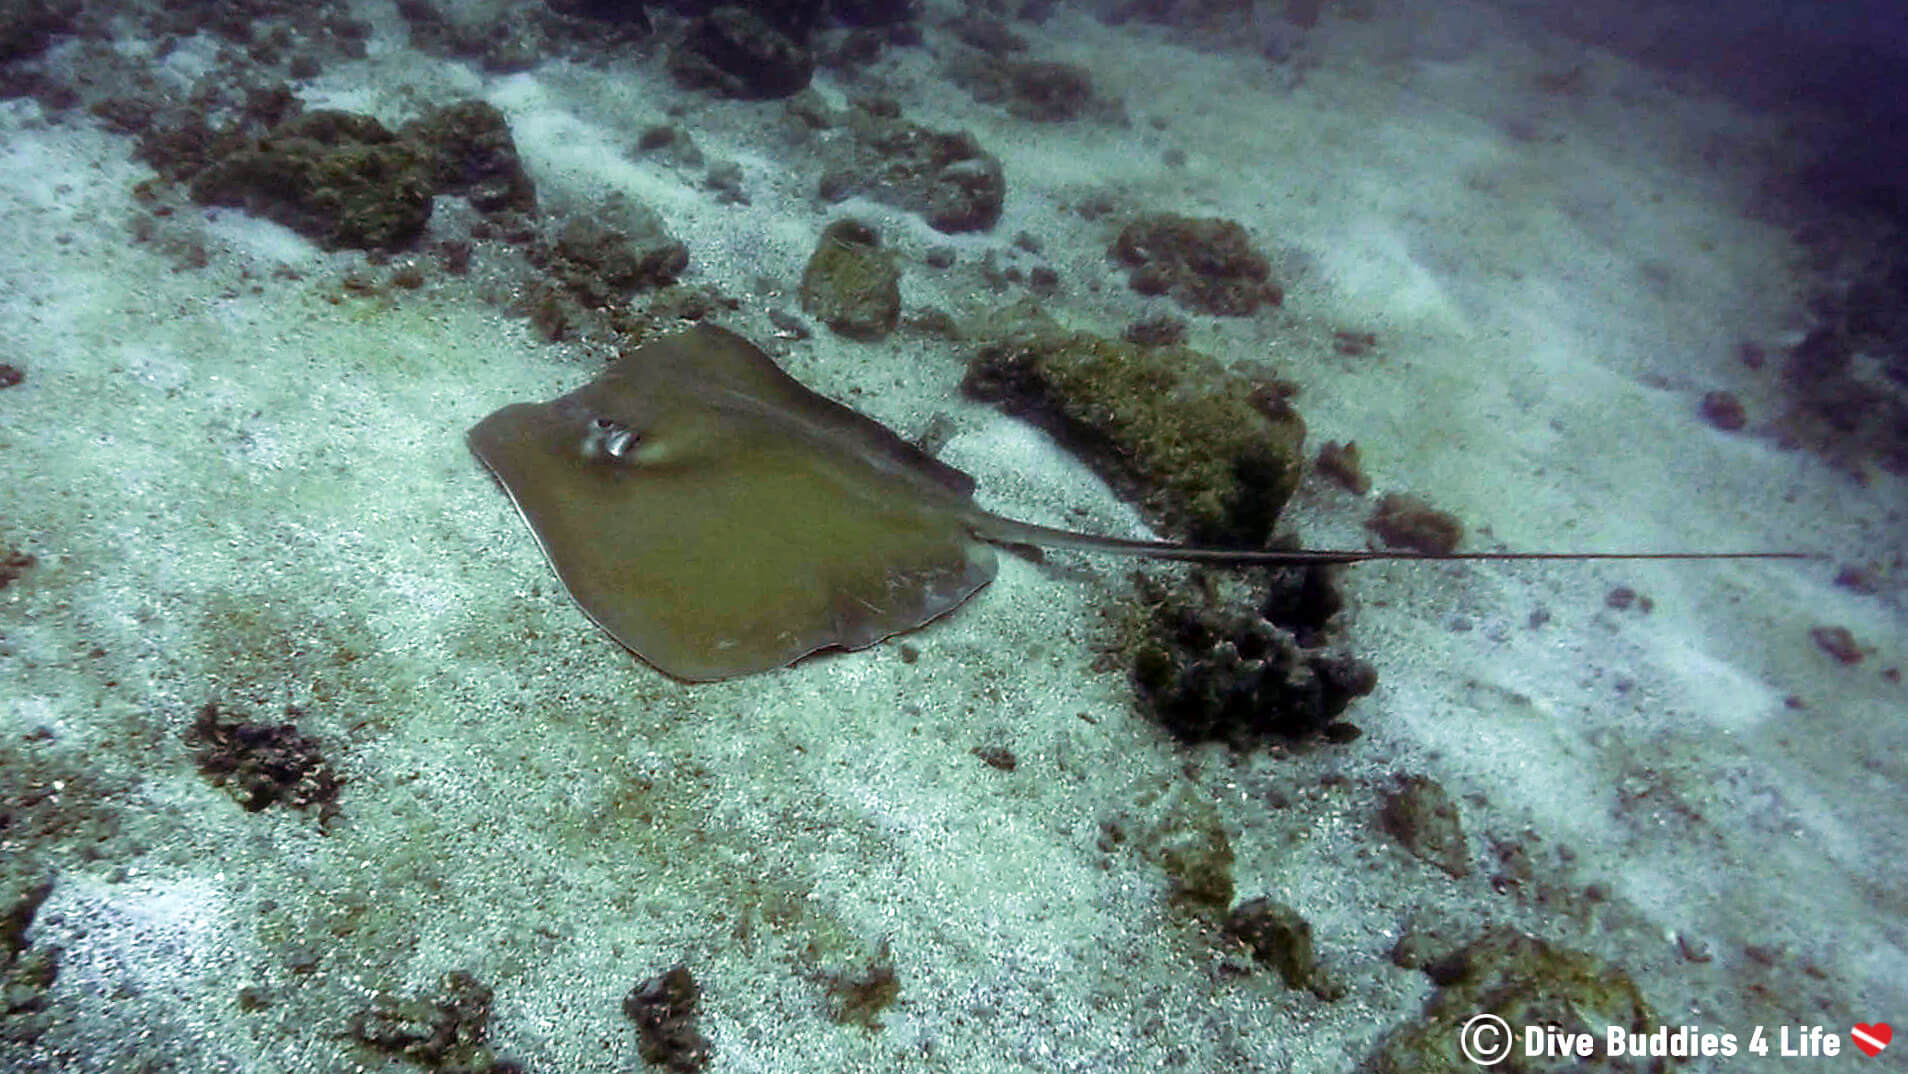 Large Southern Stingray On The Bottom Of The Ocean At The Catalina Islands, Costa Rica